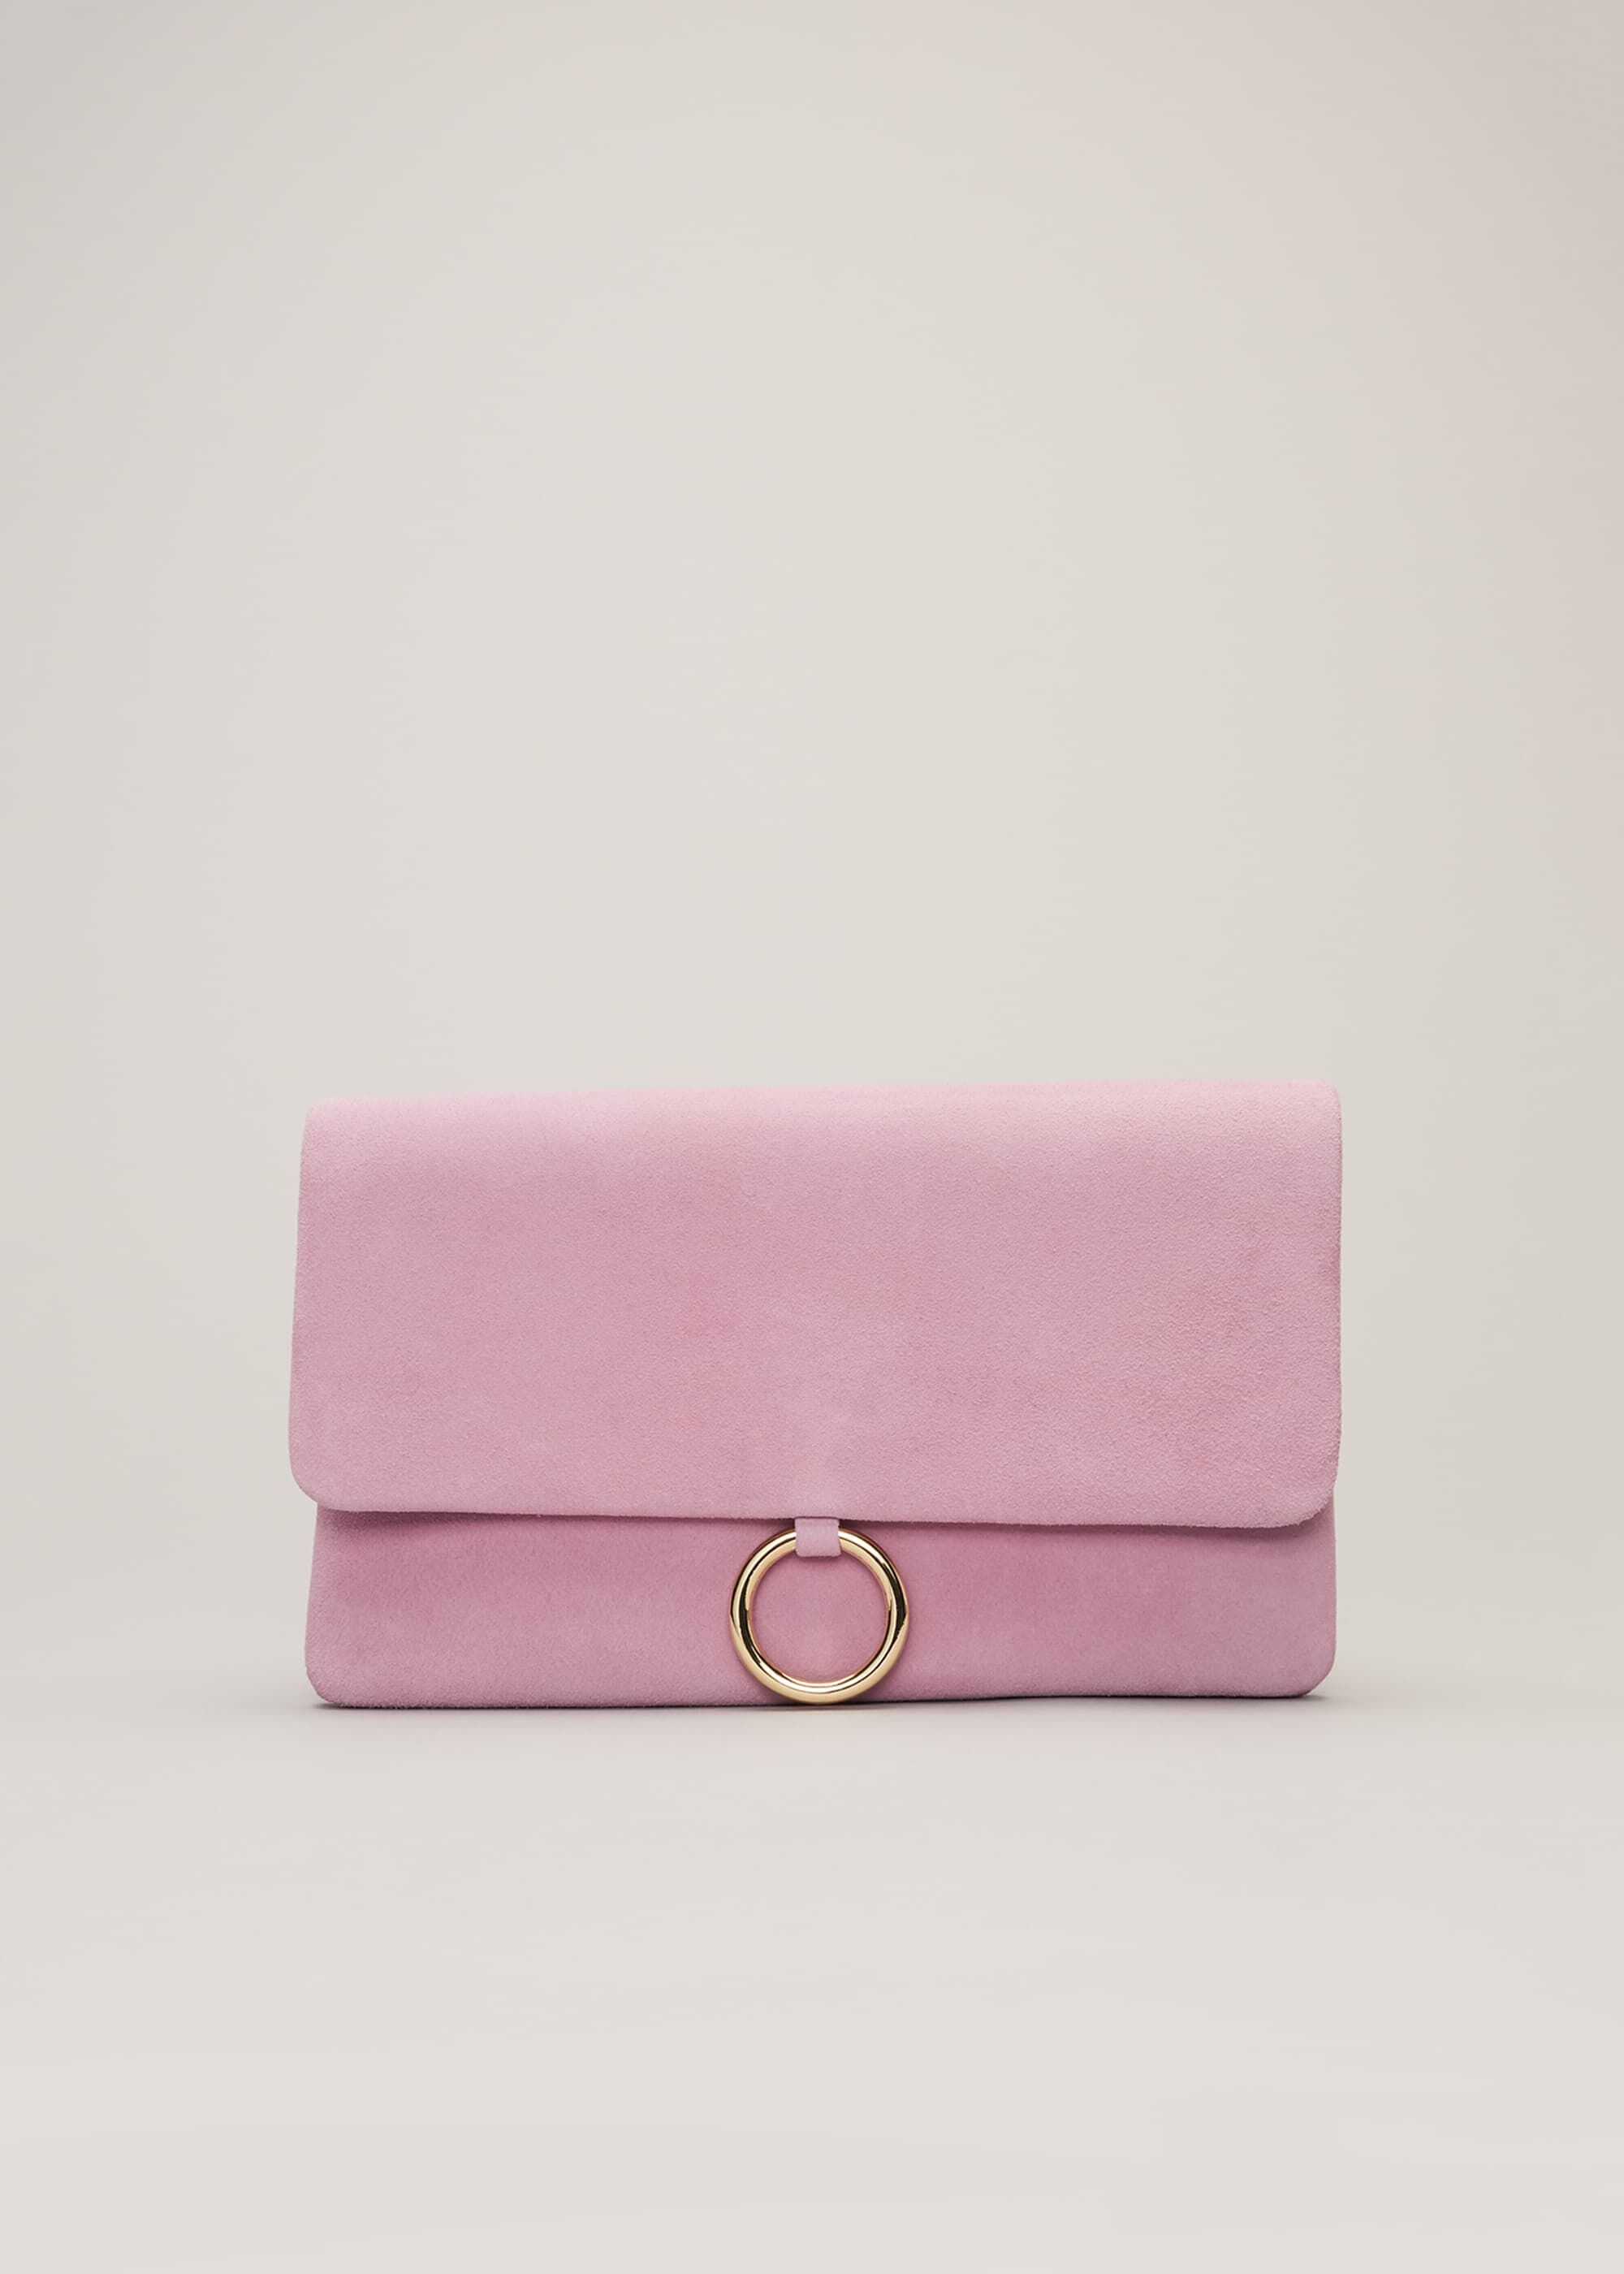 Phase Eight Giselle Suede Clutch Bag, Pink, Bag